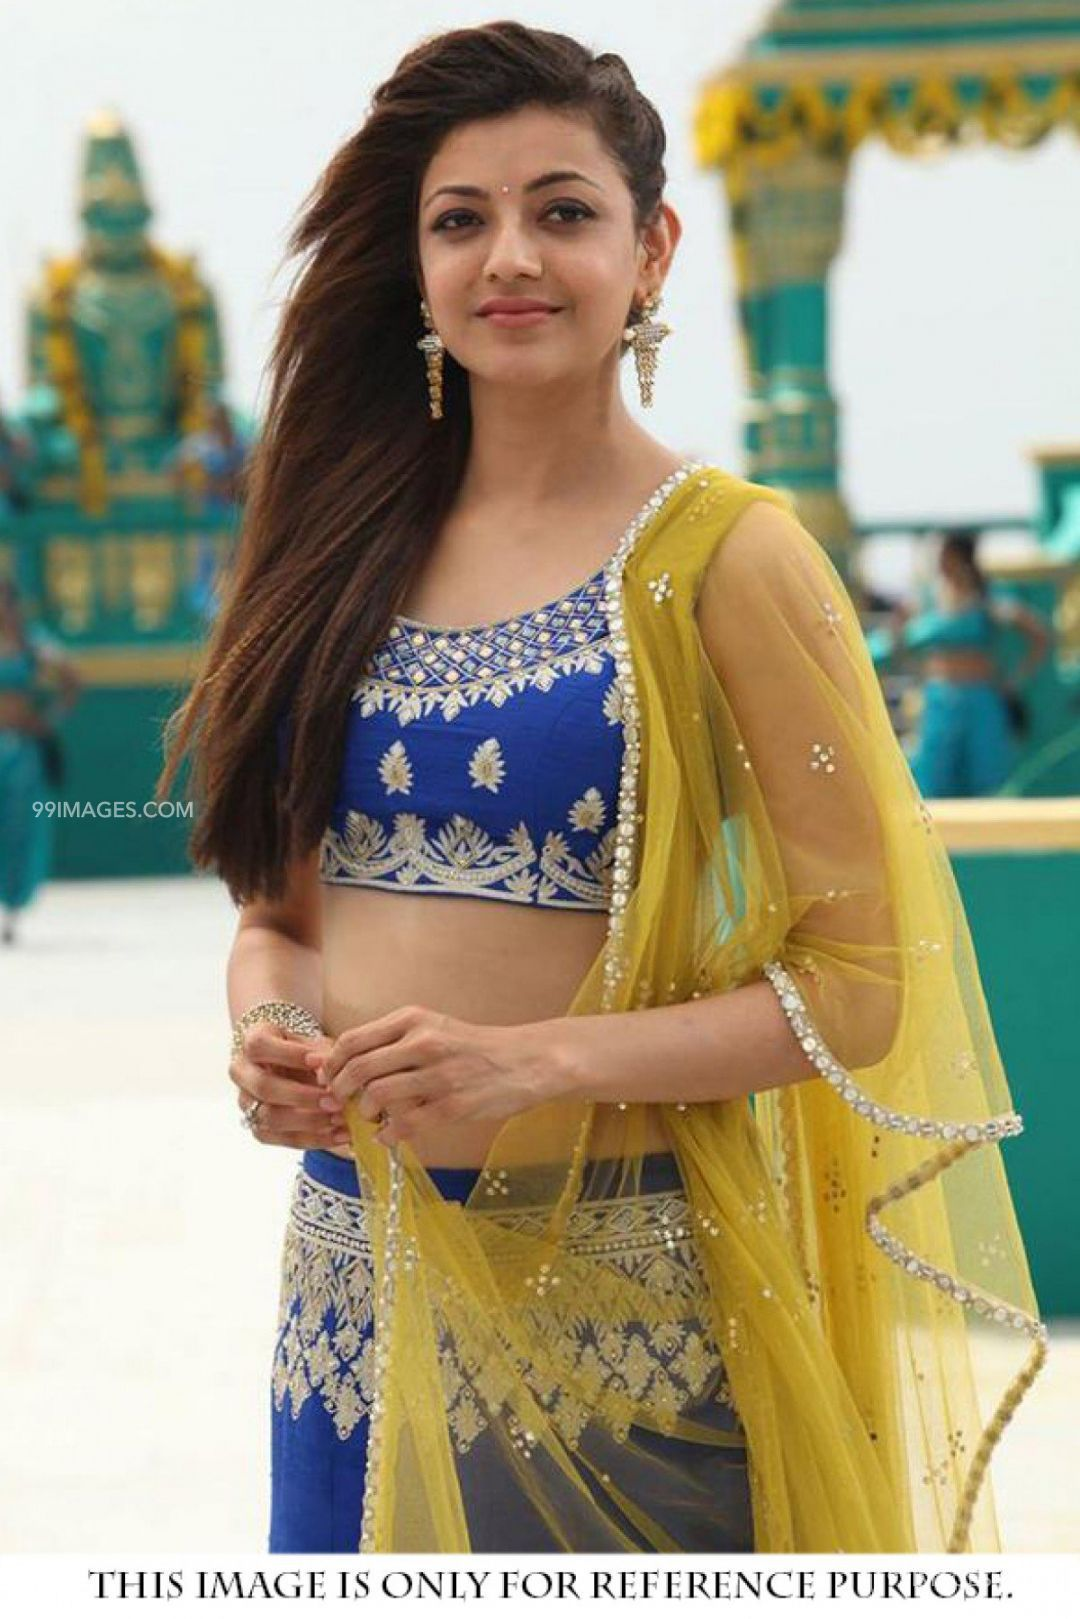 Kajalagarwal Hd Wallpapers posted by Ethan Simpson